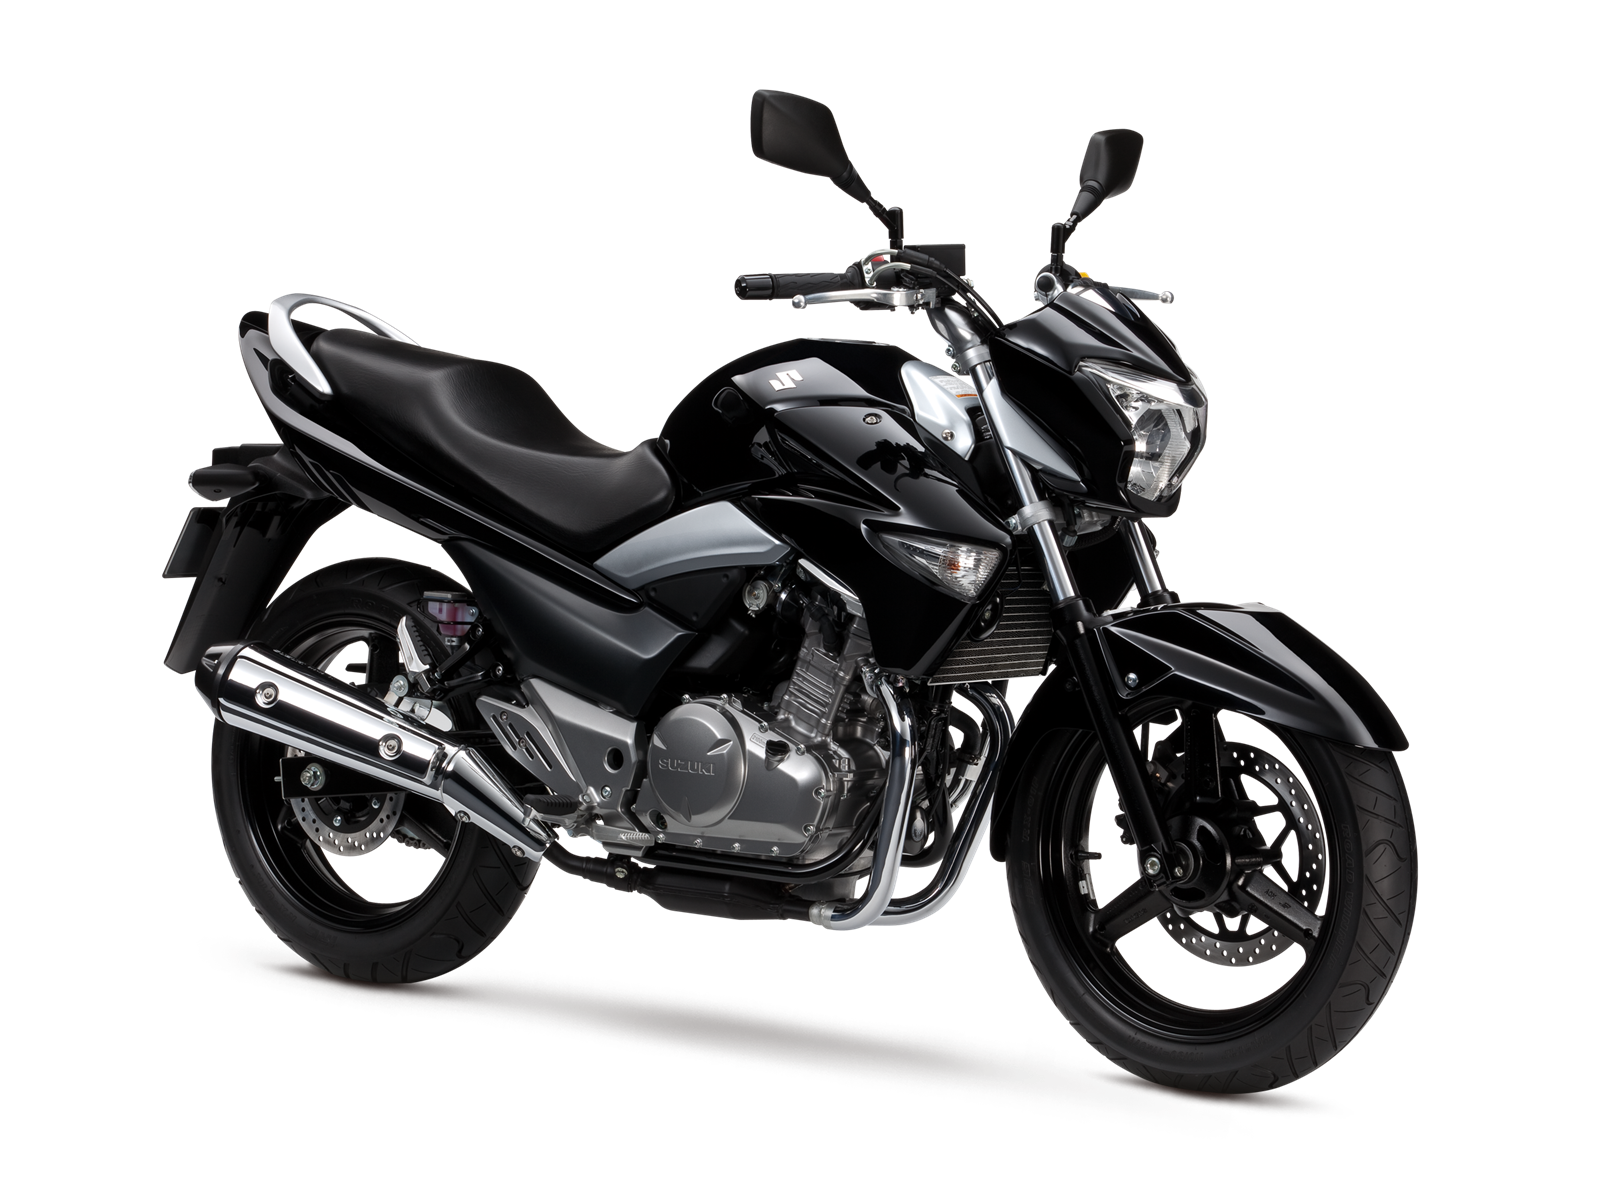 2013 Suzuki GW250 - a 250cc twin entry level standard.